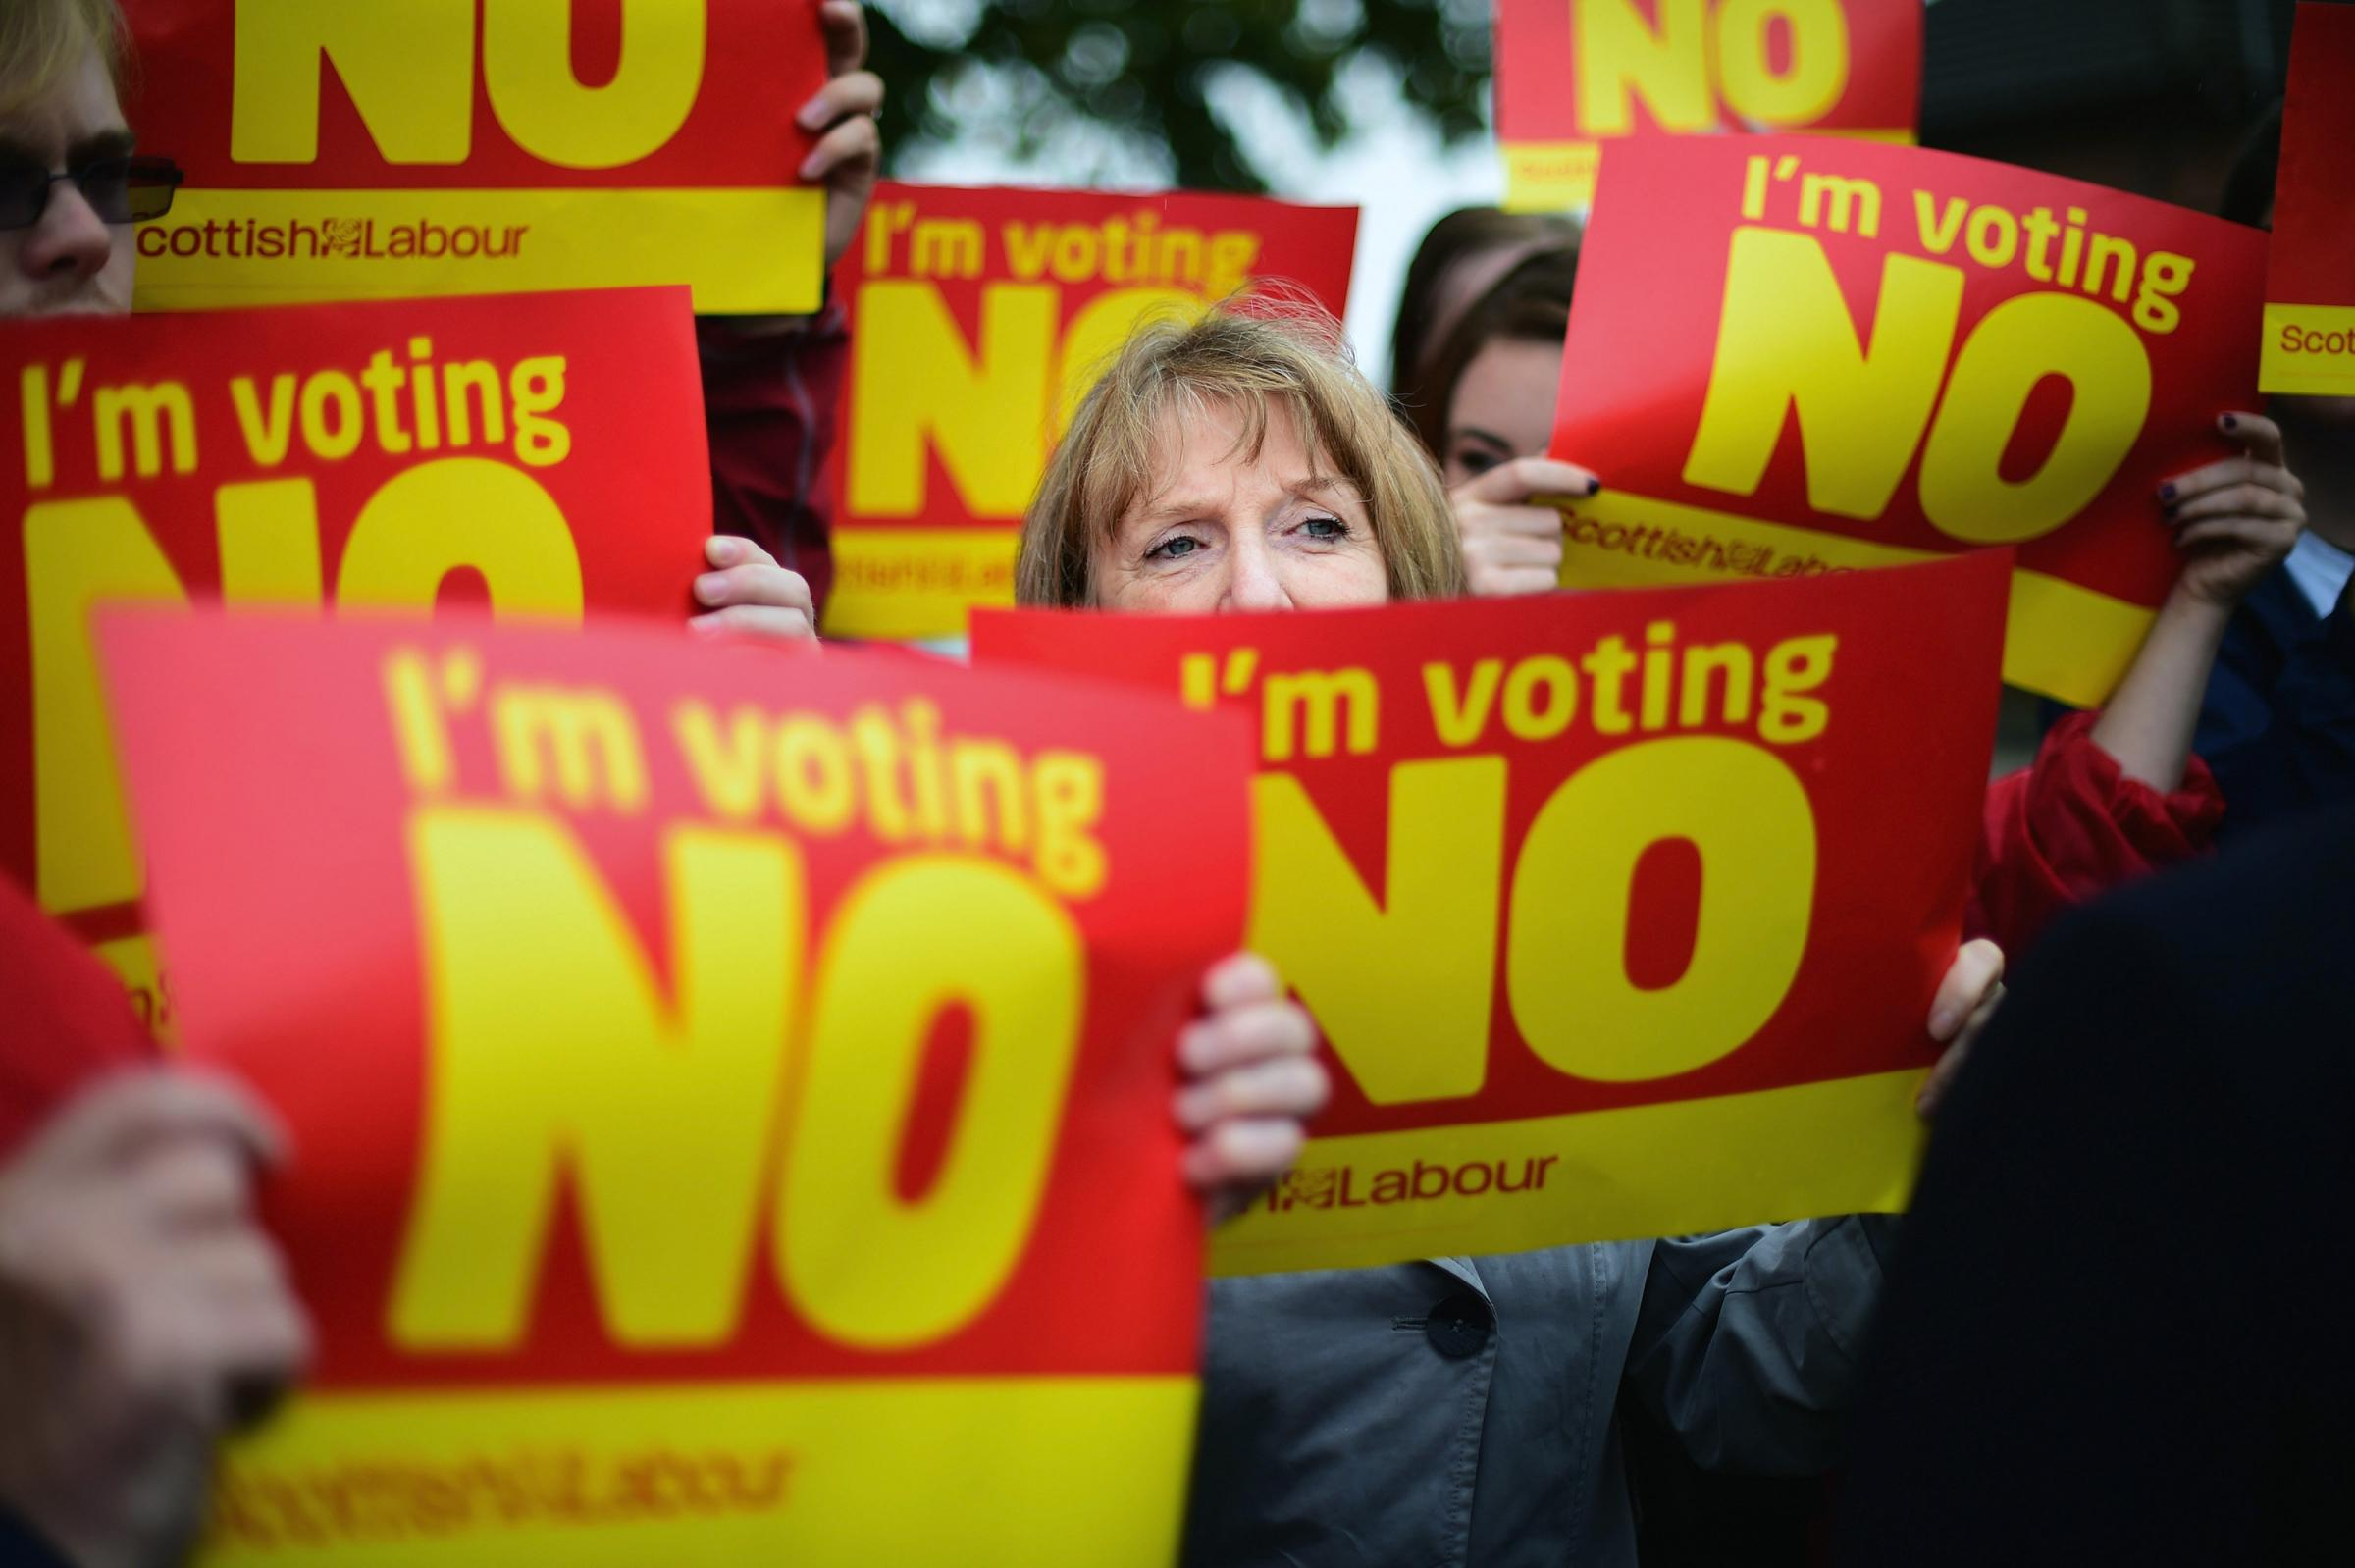 Progress Scotland will find out why certain groups voted No in 2014